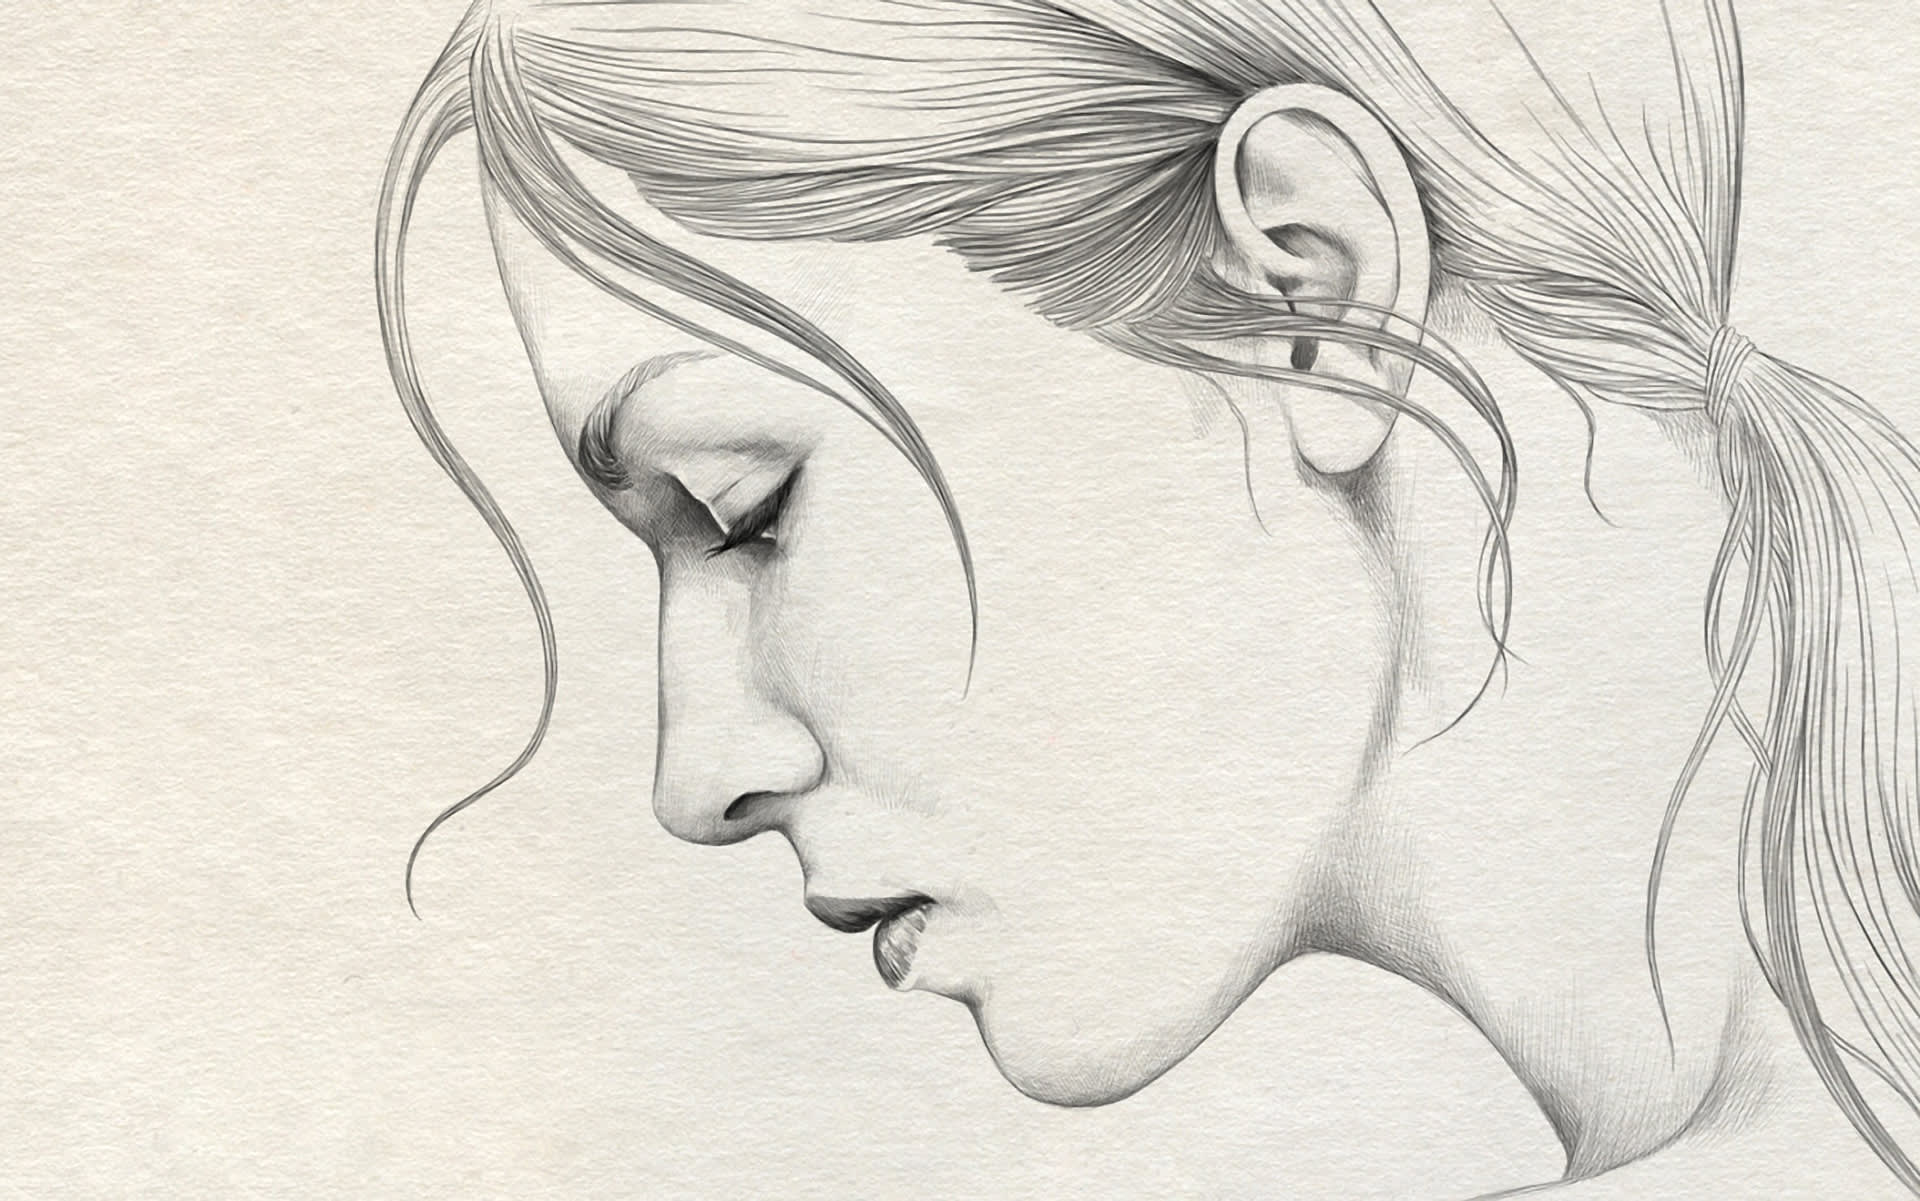 I will turn your photo into pencil sketch